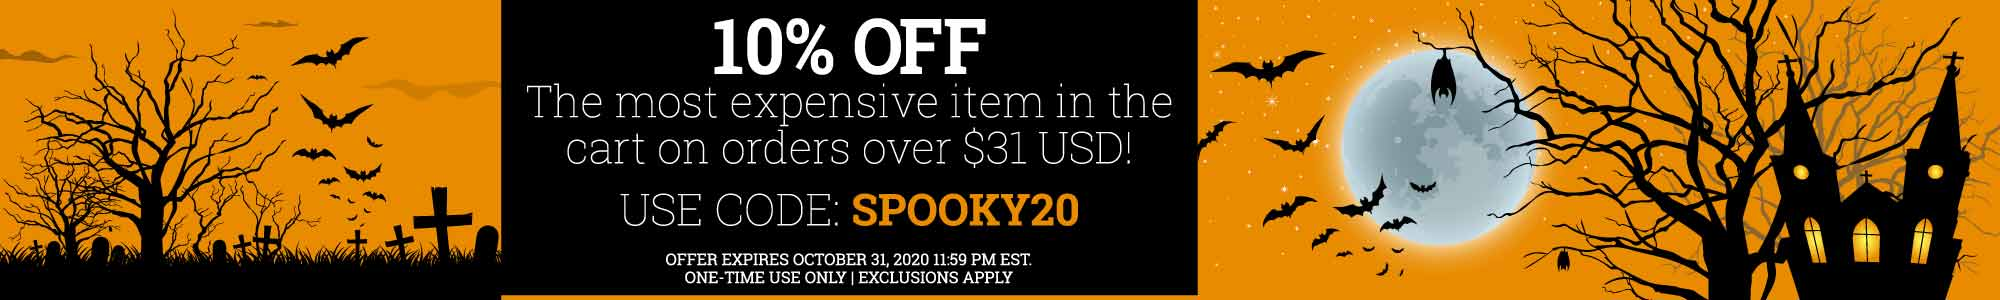 Happy Halloween! 10% OFF the most expensive item in the cart on orders over $31 USD. Use coupon code: spooky20 OFFER EXPIRES 10/31/2020 11:59 PM EST. ONE-TIME USE ONLY. Some exclusions apply.